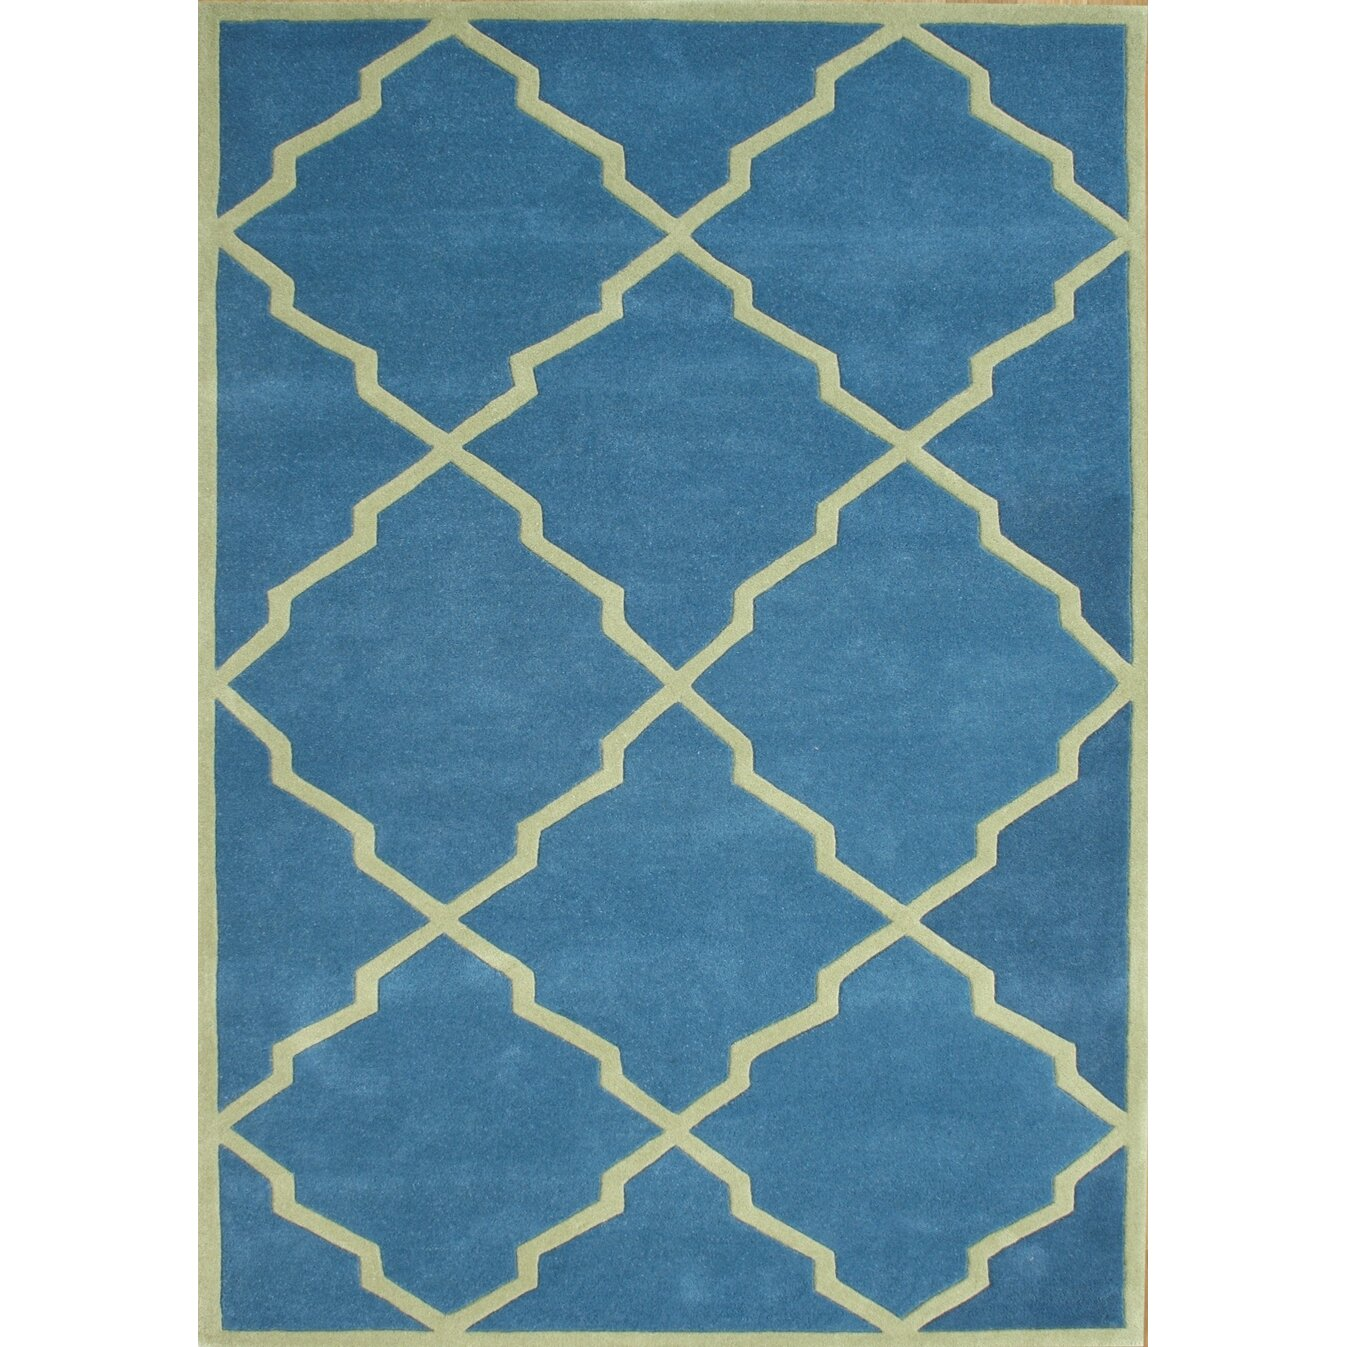 James Bond Alliyah Aqua Area Rug Amp Reviews Wayfair